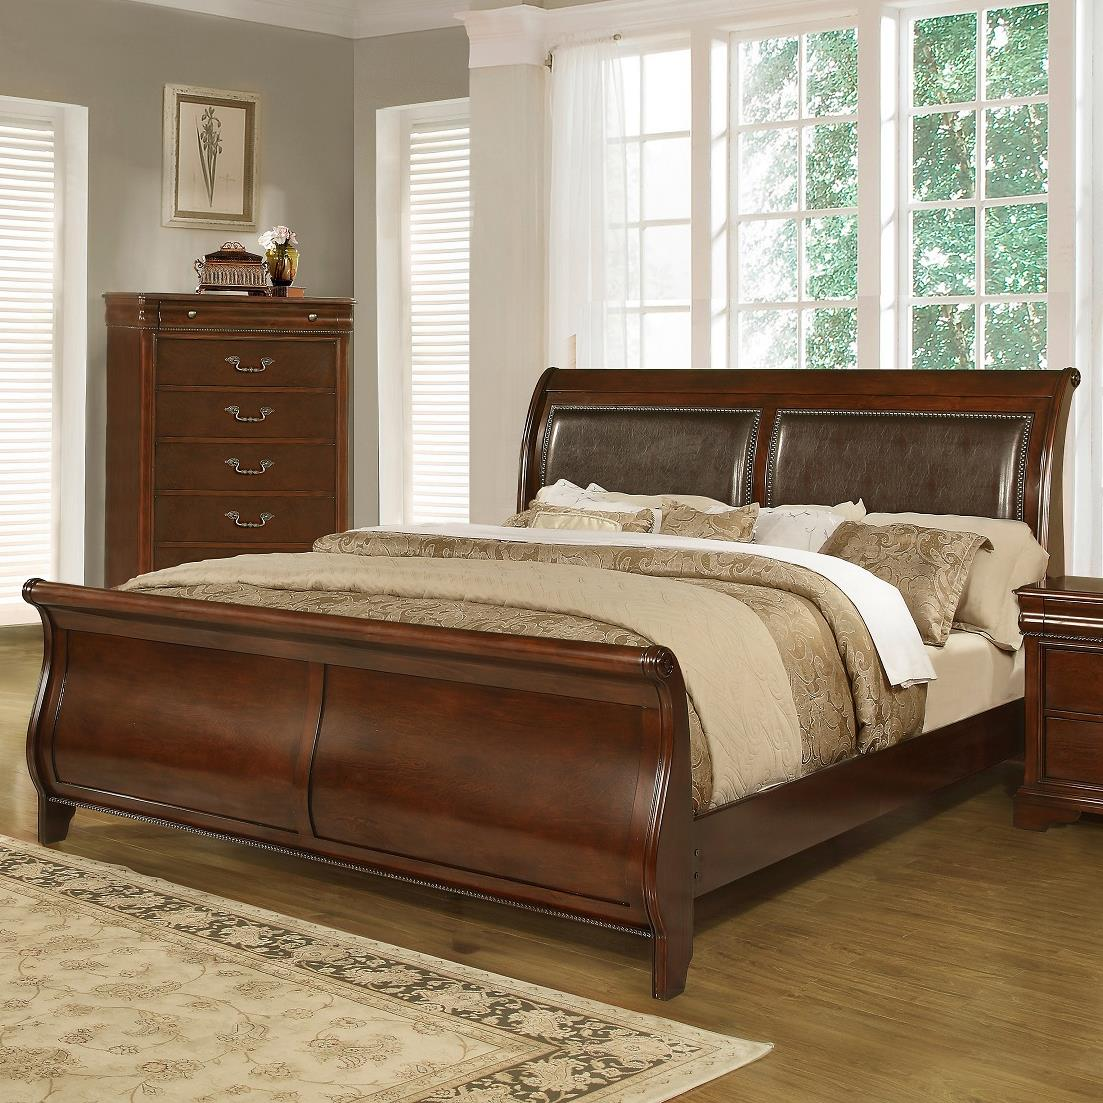 Lifestyle C4116a Traditional Queen Sleigh Bed Furniture